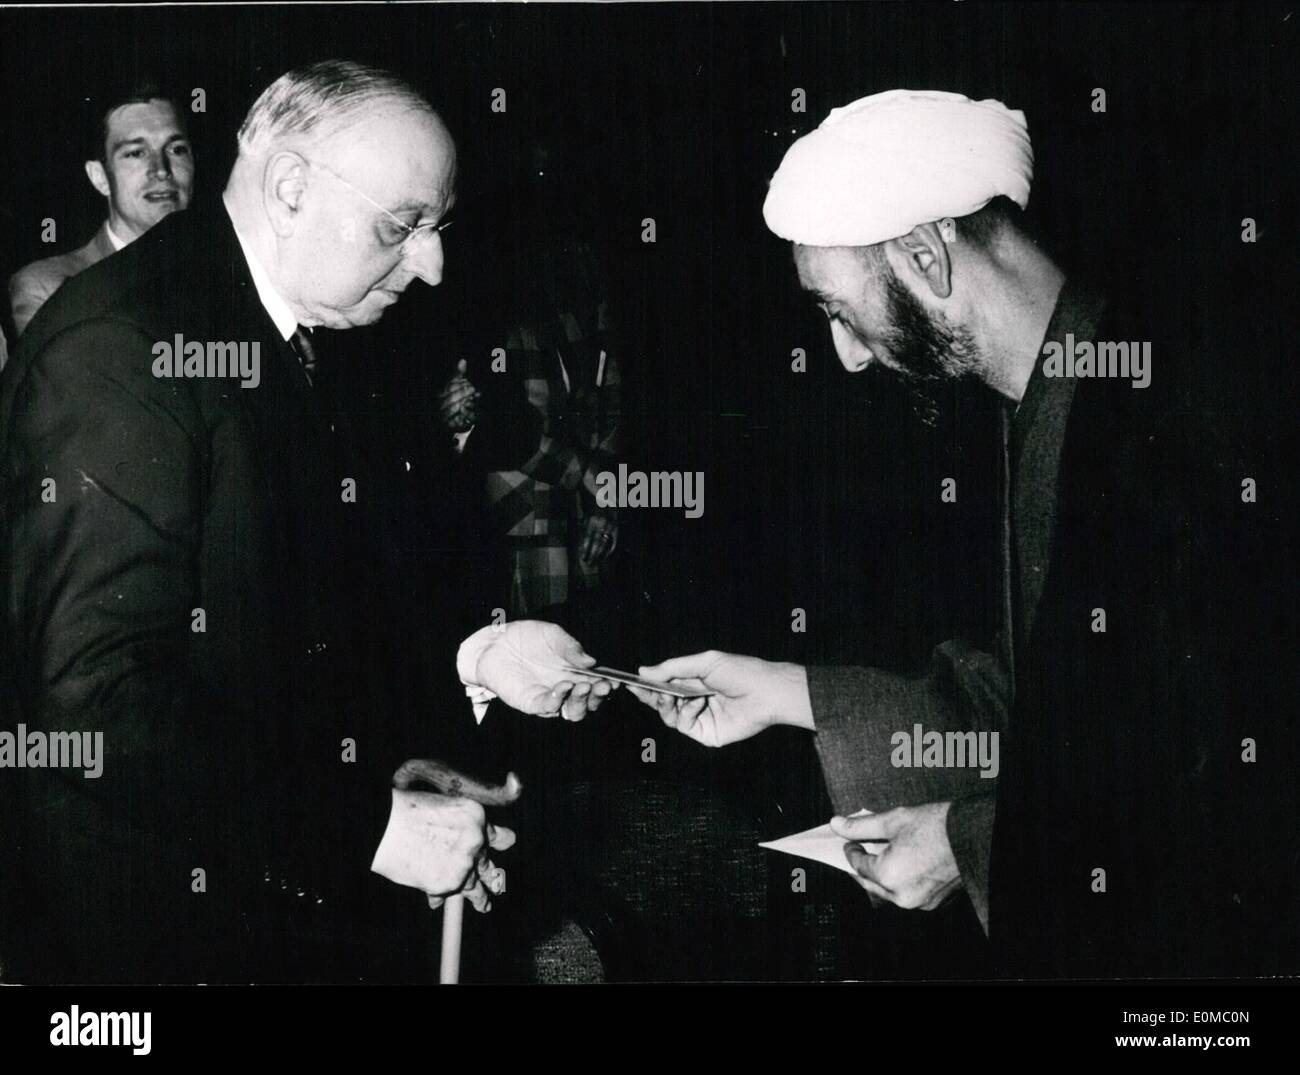 Jun. 06, 1954 - Personally greetings from the Shah of Iran.: The sheich Hadji Mujtahedi from Nishapur brought a letter from the - Stock Image